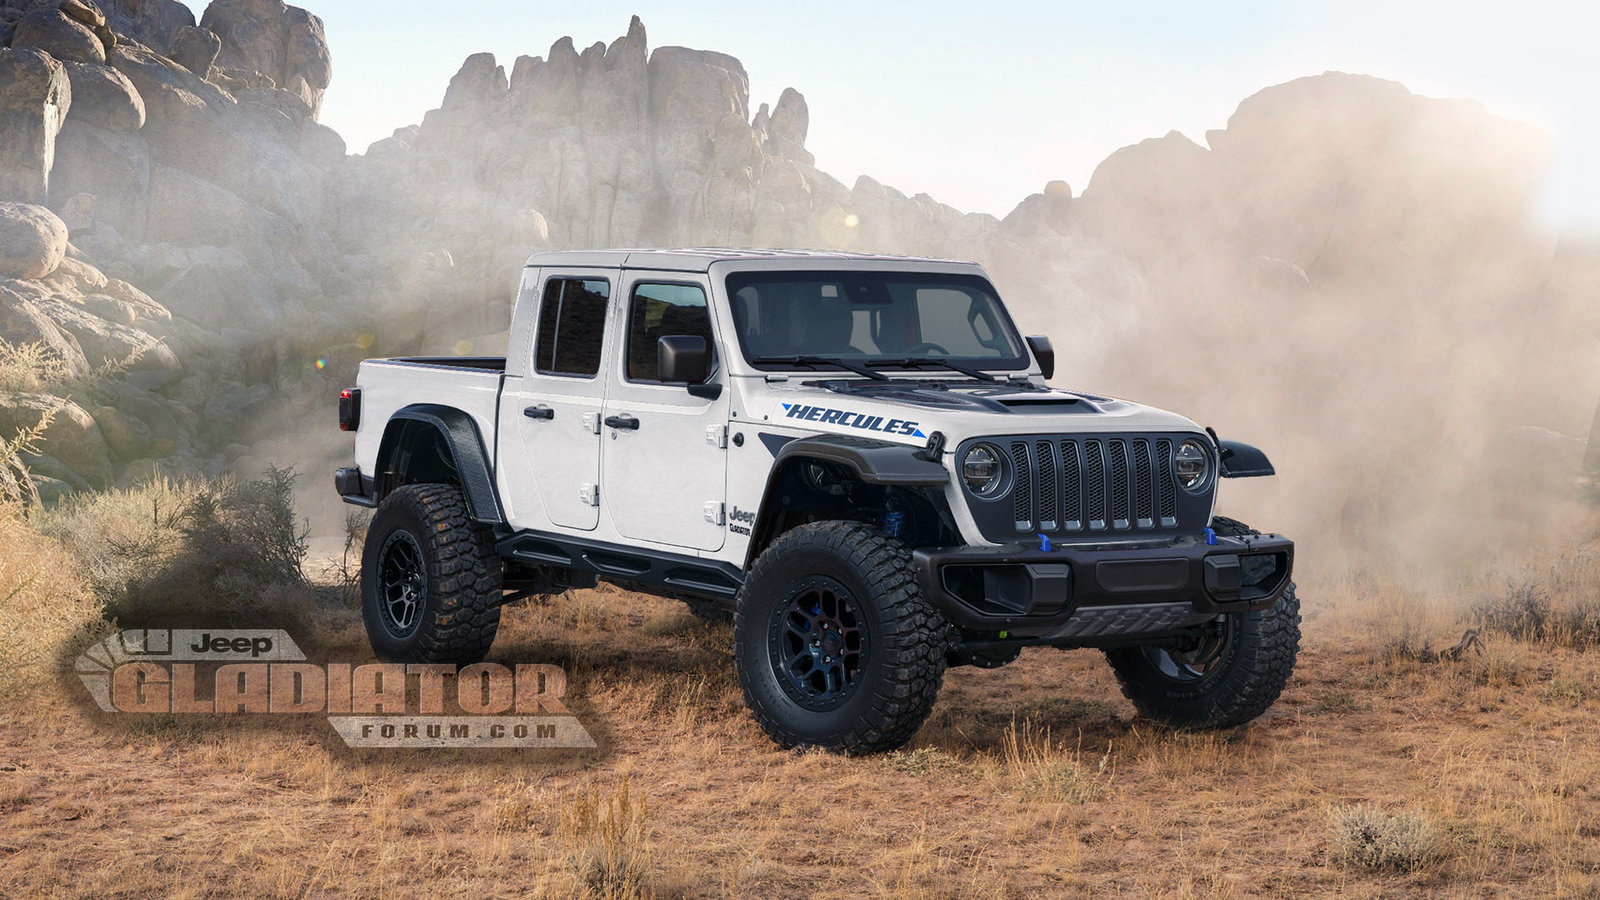 Jeep Gladiator Hercules renderings (2)